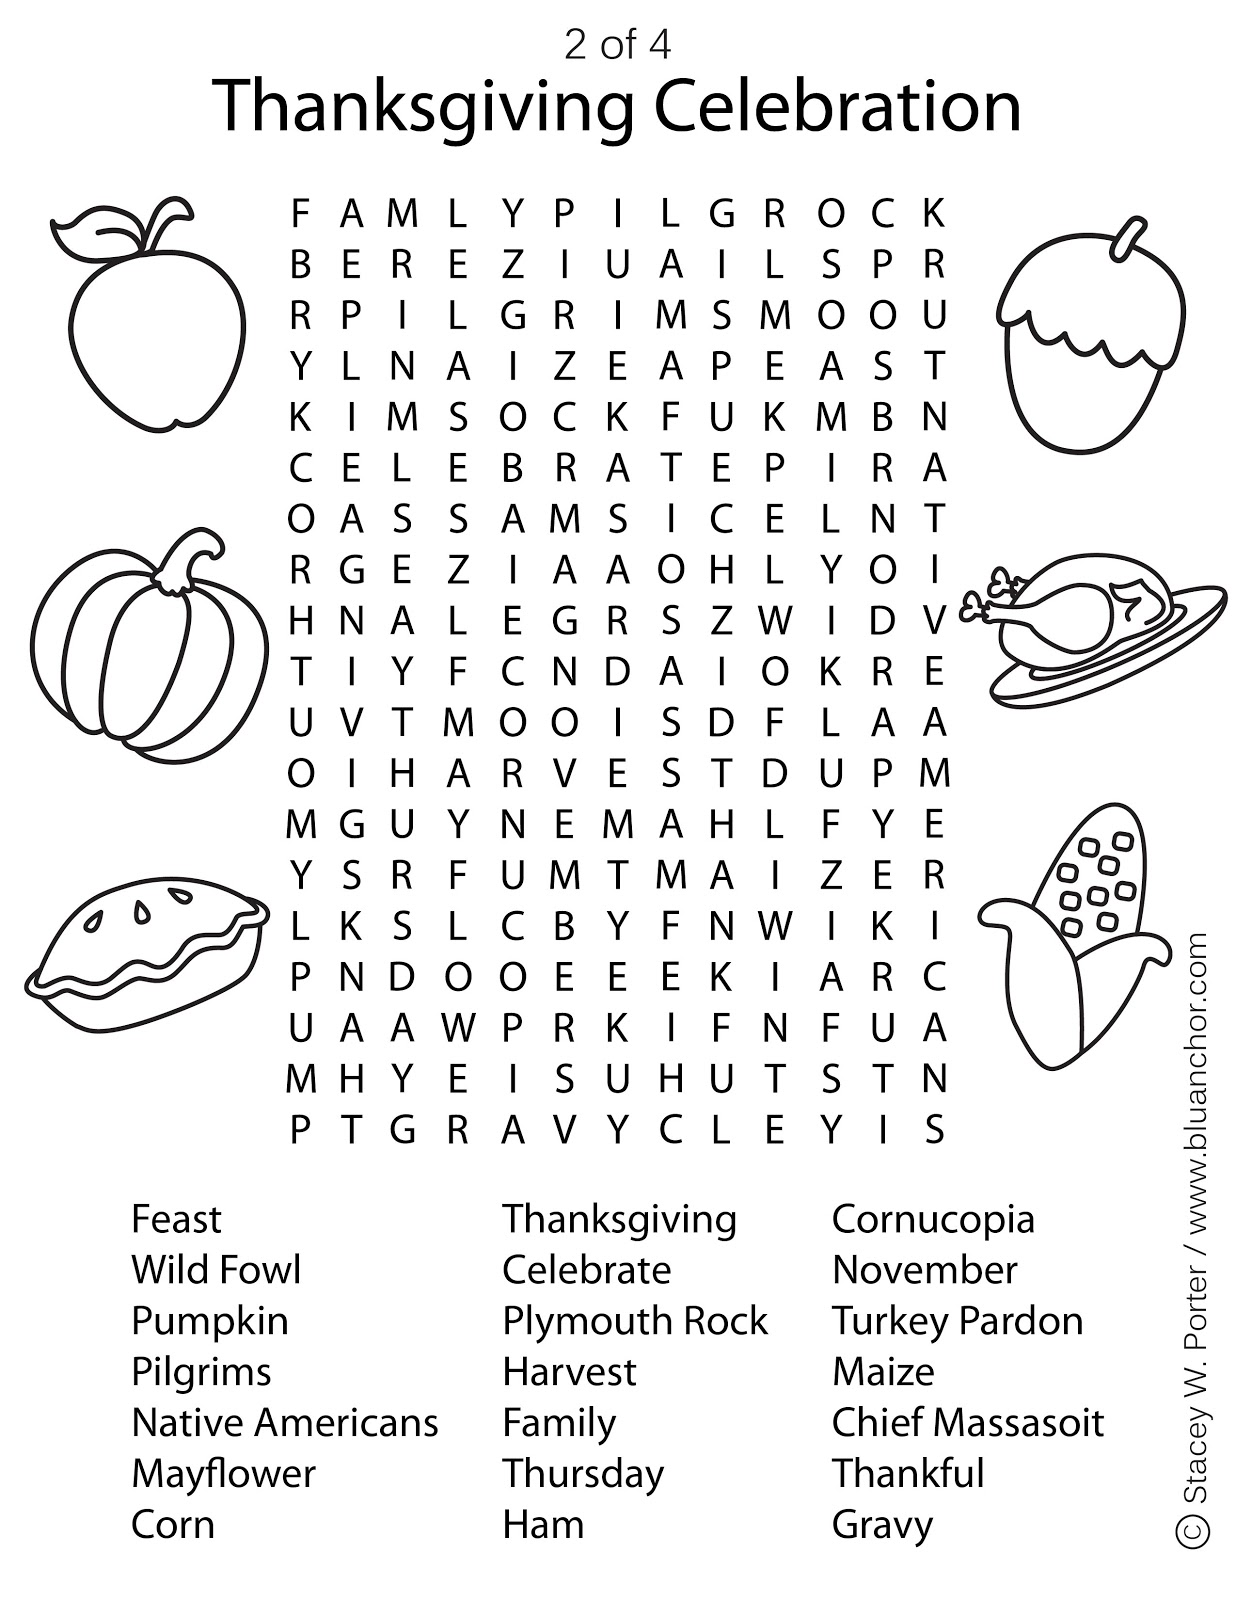 worksheet Thanksgiving Worksheets Free the art of stacey w porter free thanksgiving printable wordfind activity sheet 2 4